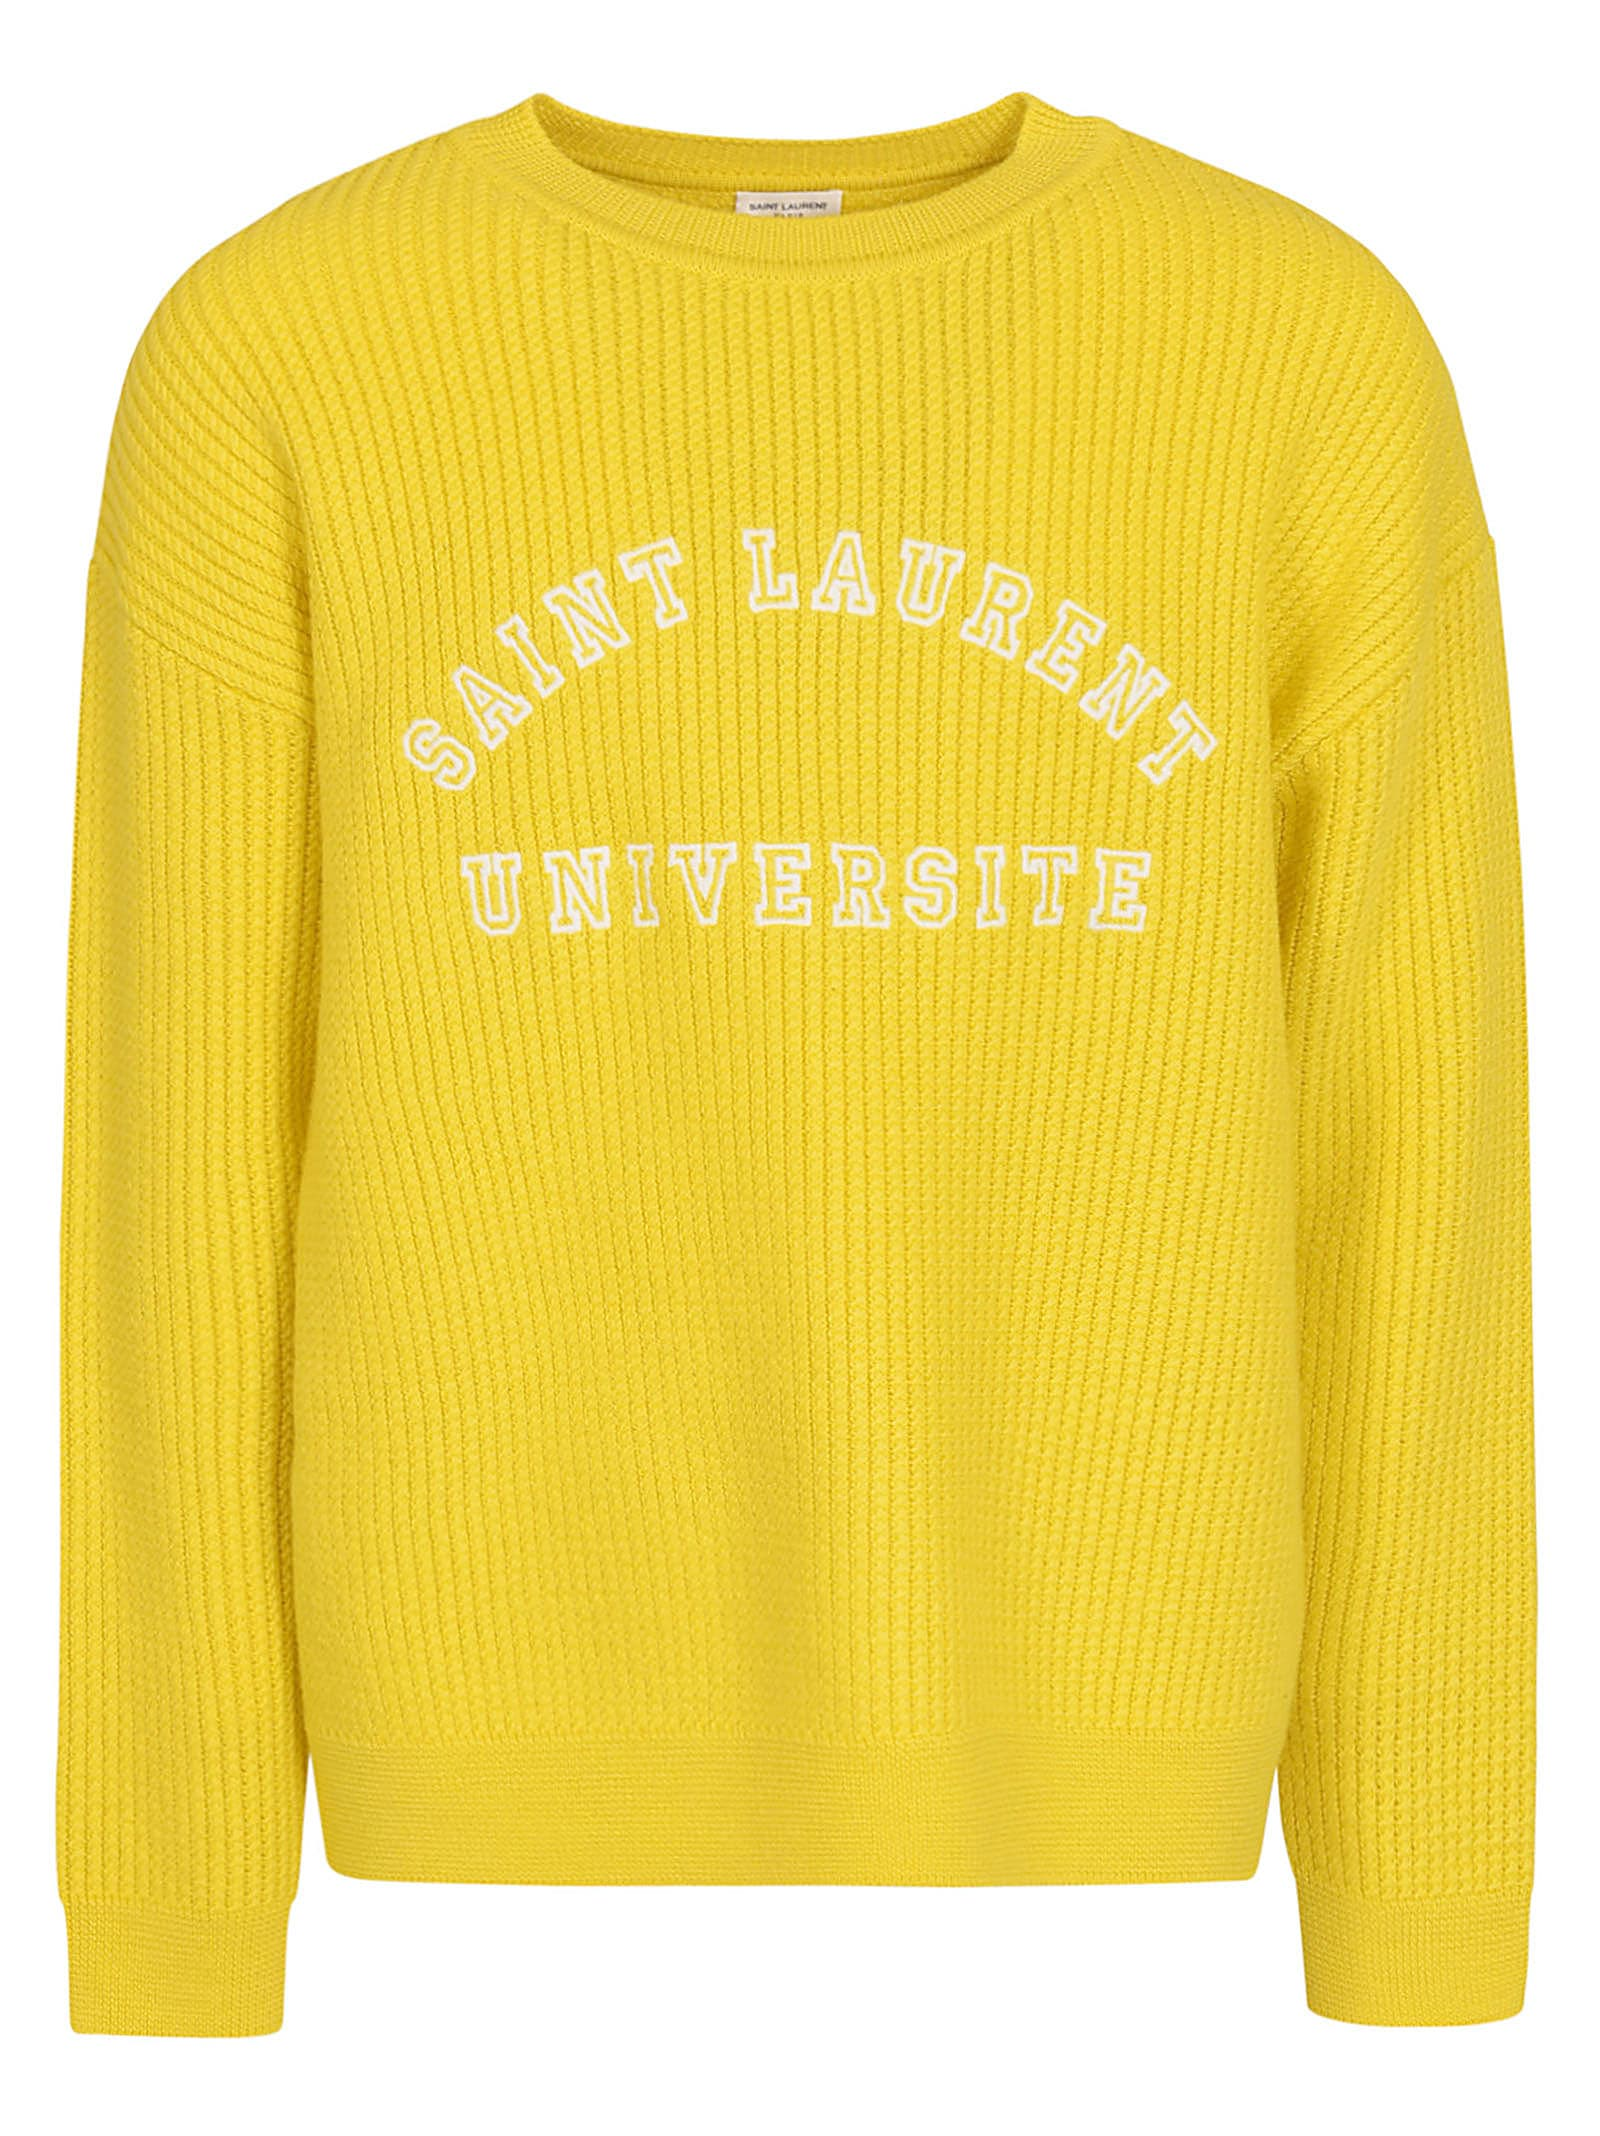 Saint Laurent Ribbed Knit Sweater In Yellow